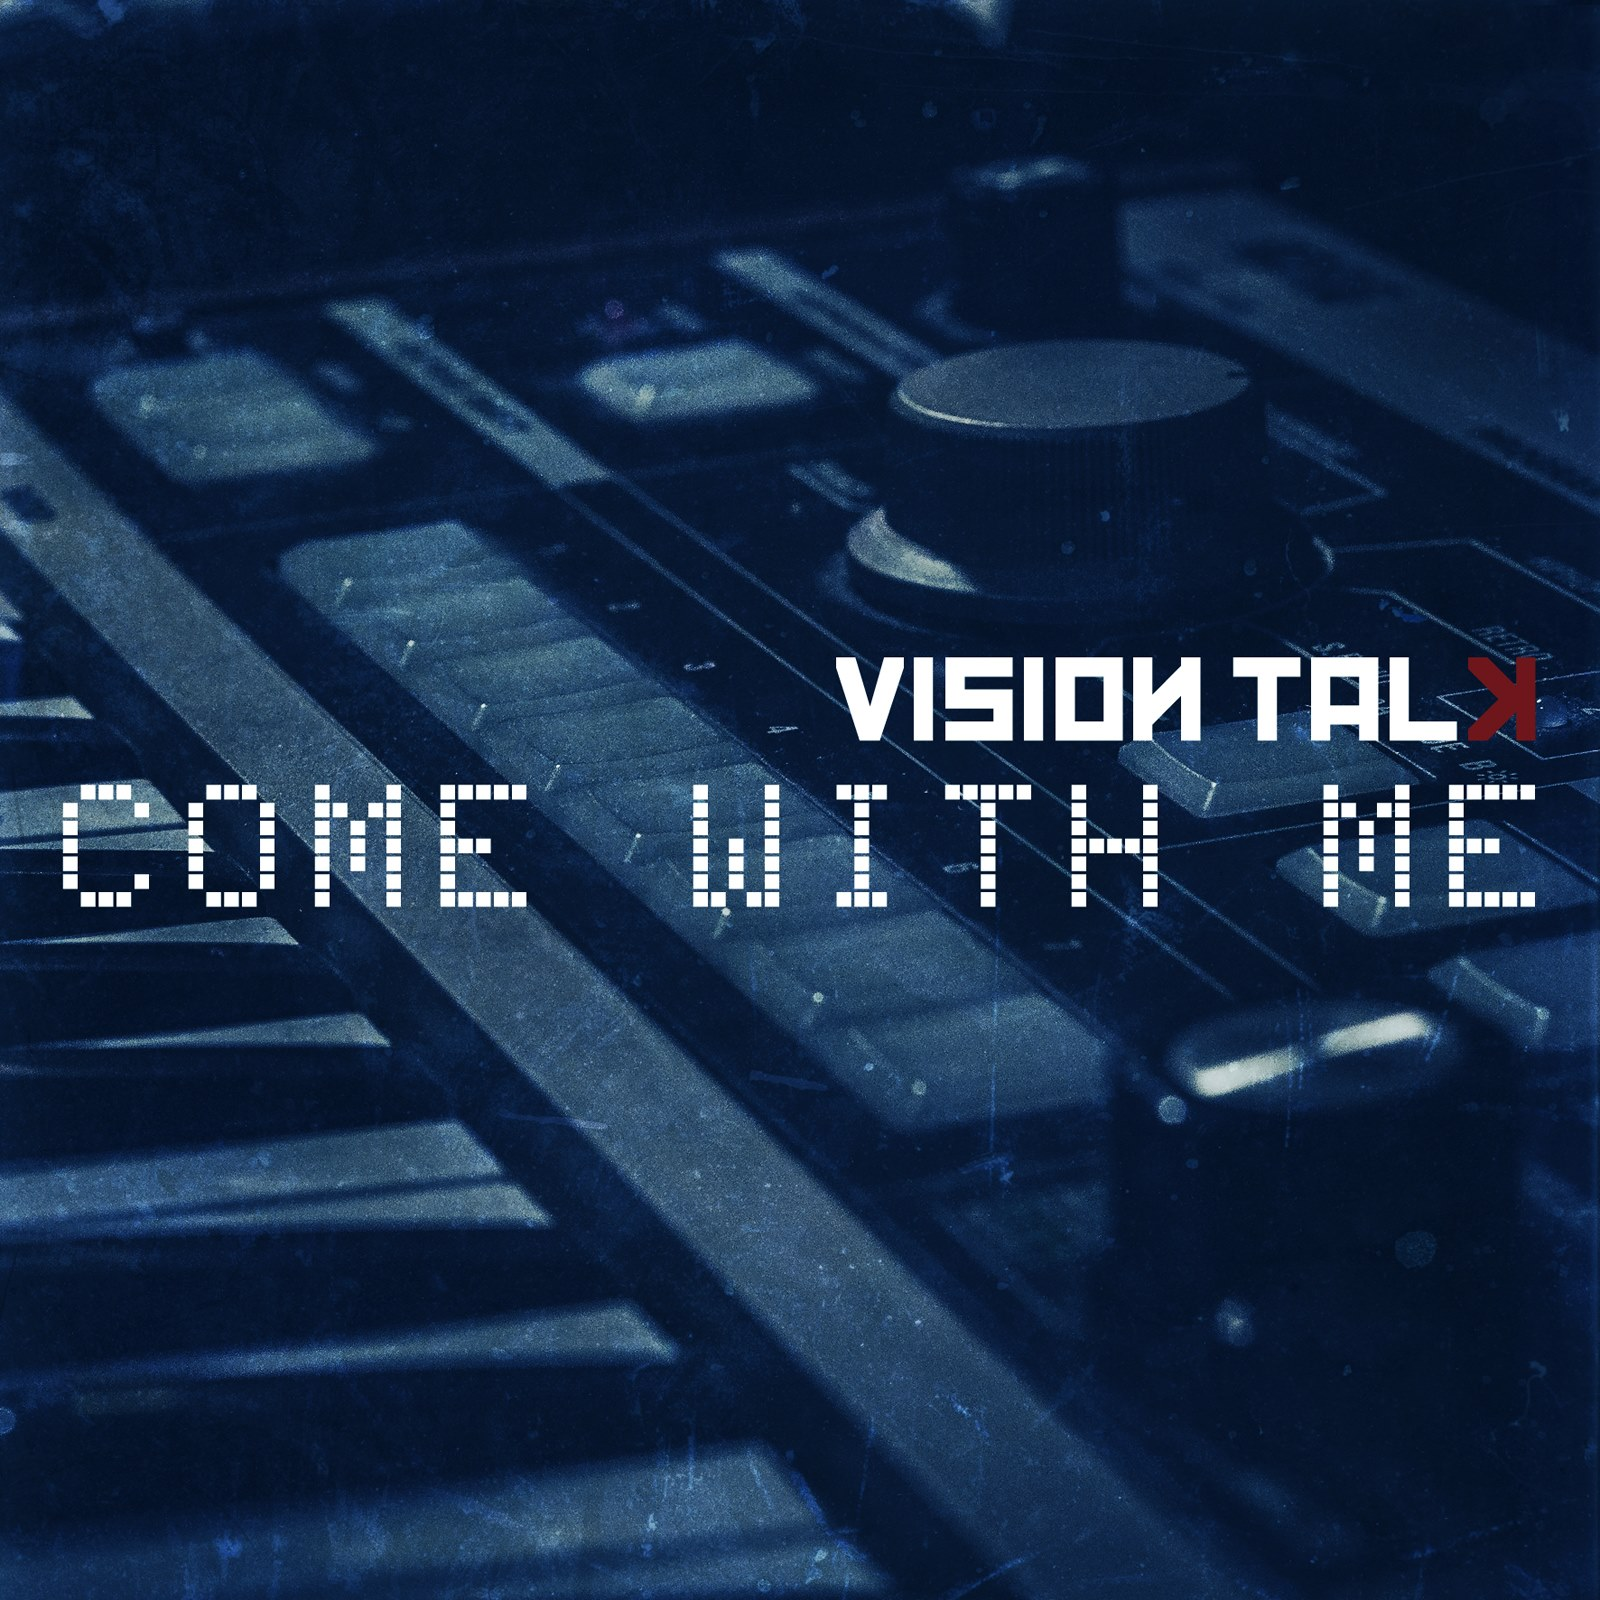 Conzoom Records - new Vision Talk single